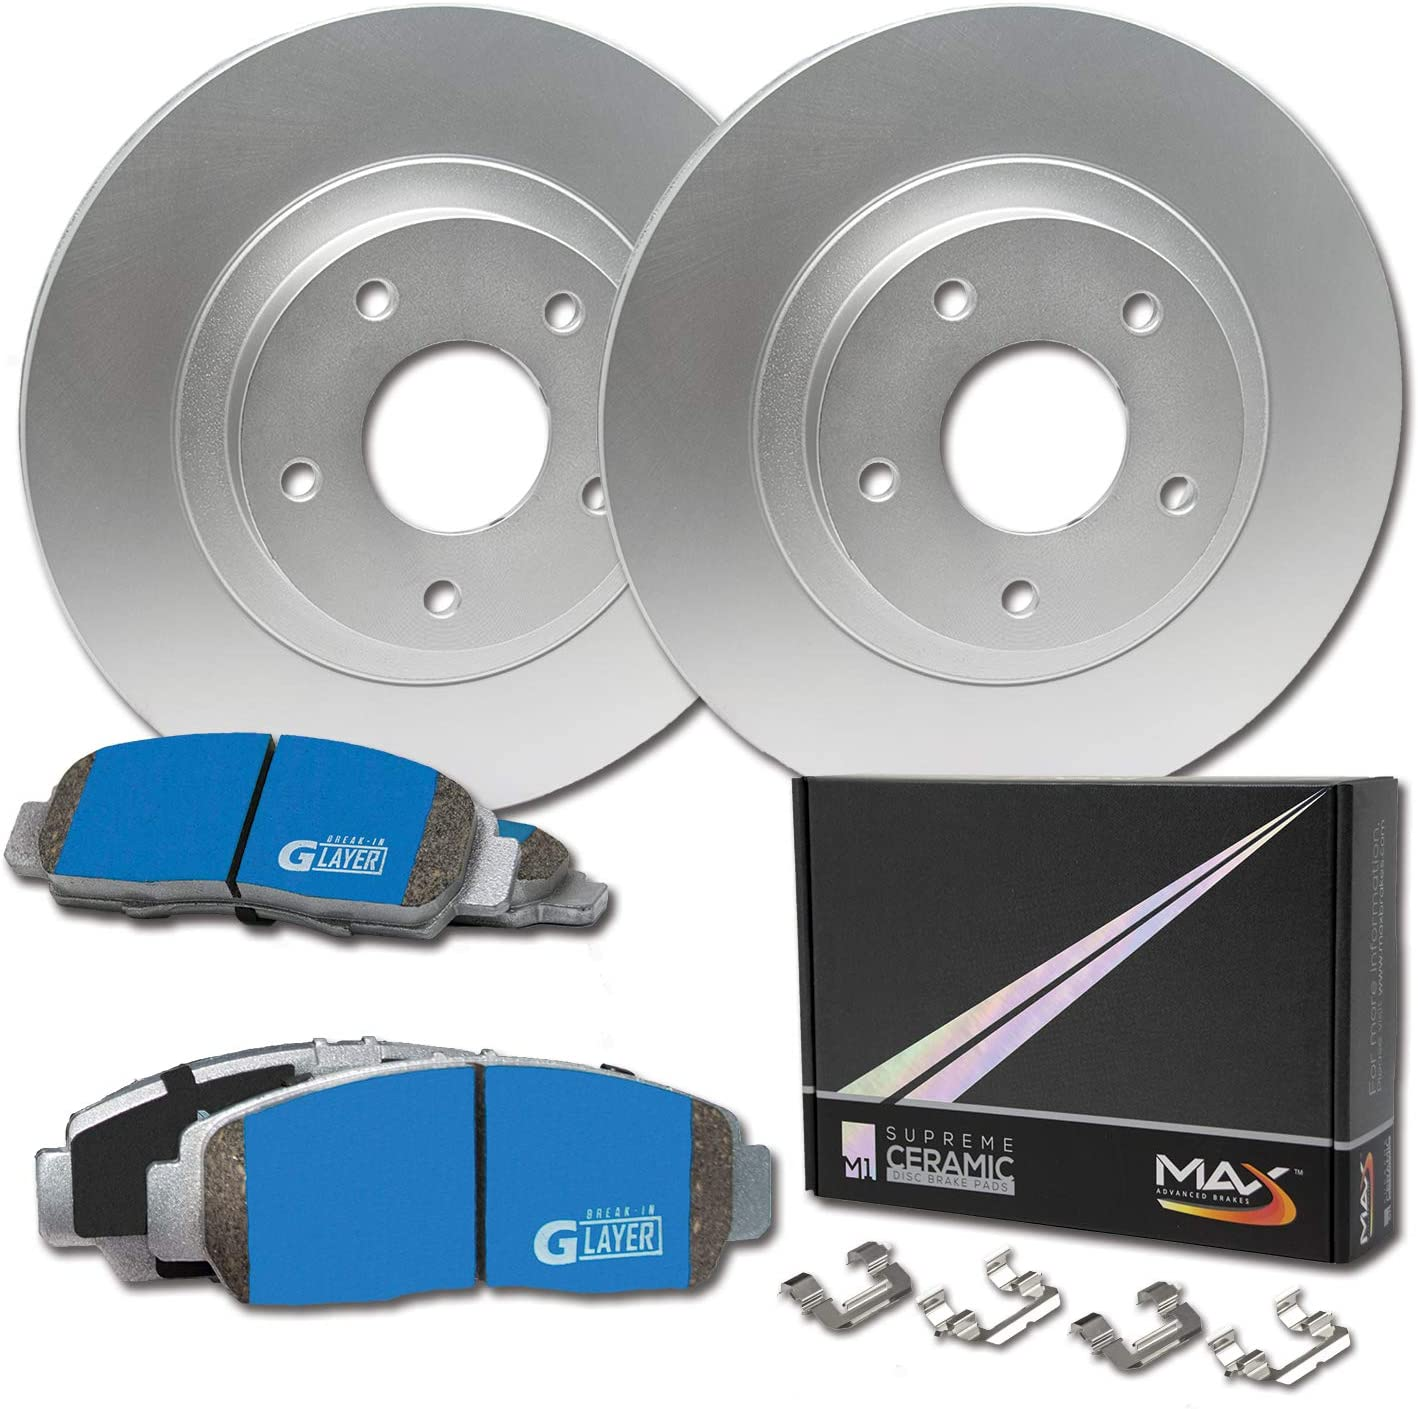 Max Brakes Geomet OE Rotors with Carbon Ceramic Pads KT114661 Front